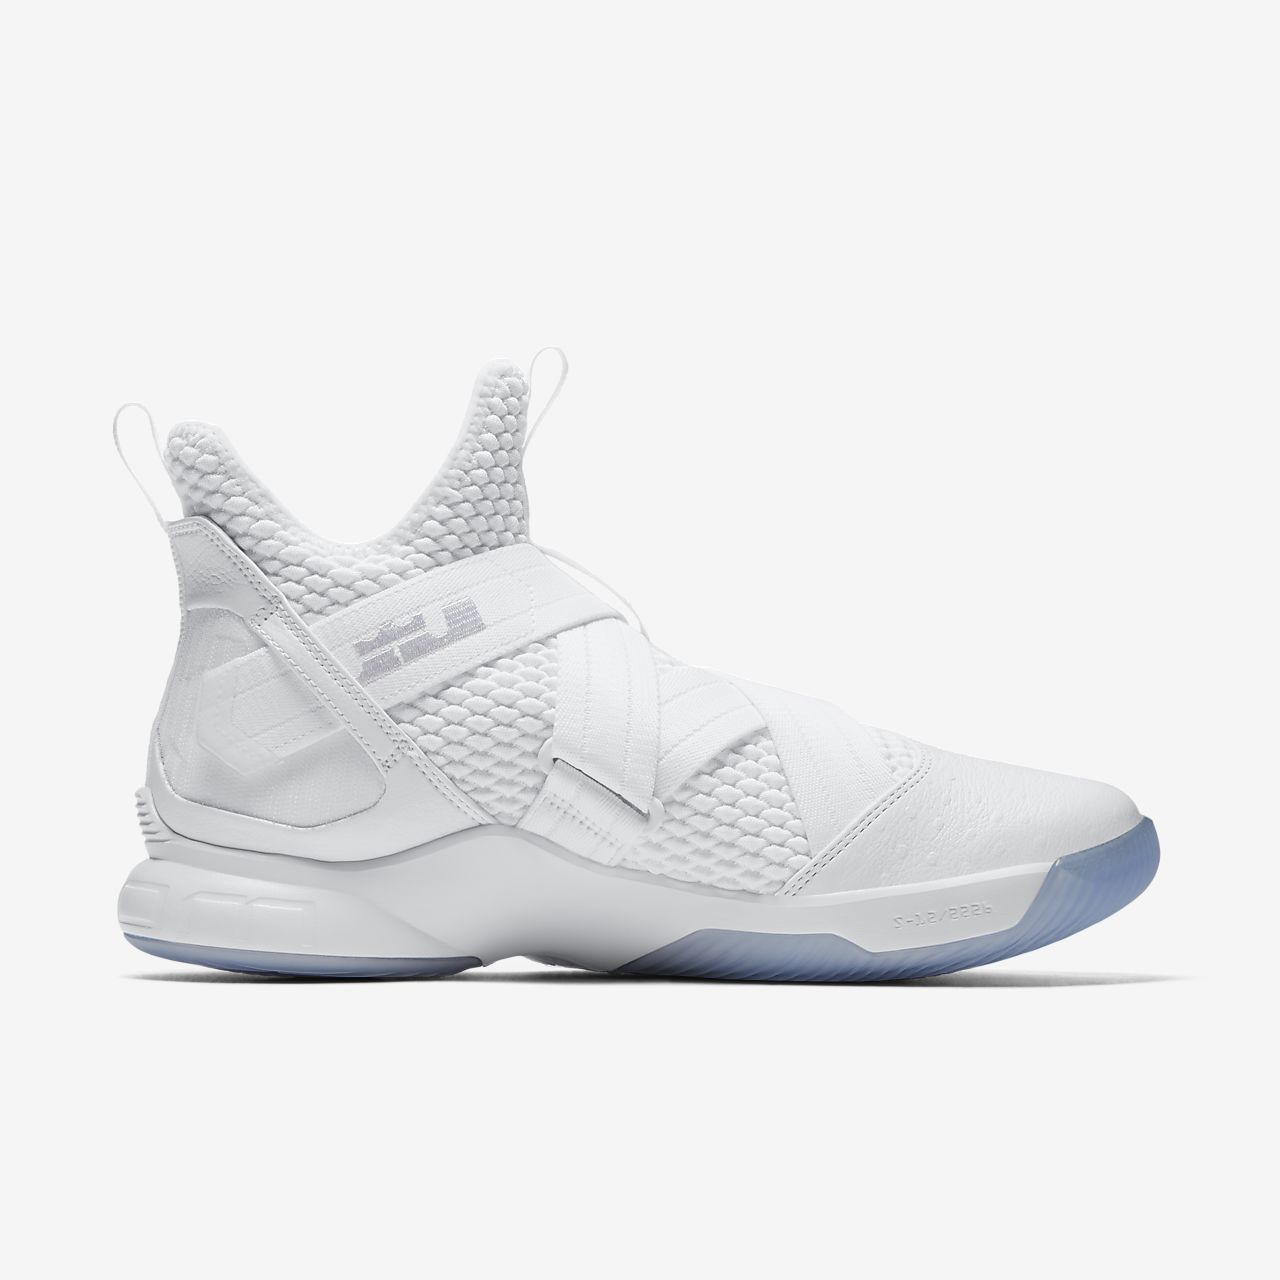 new styles b8a00 51d8f Low Resolution LeBron Soldier 12 SFG Basketballschuh LeBron Soldier 12 SFG  Basketballschuh